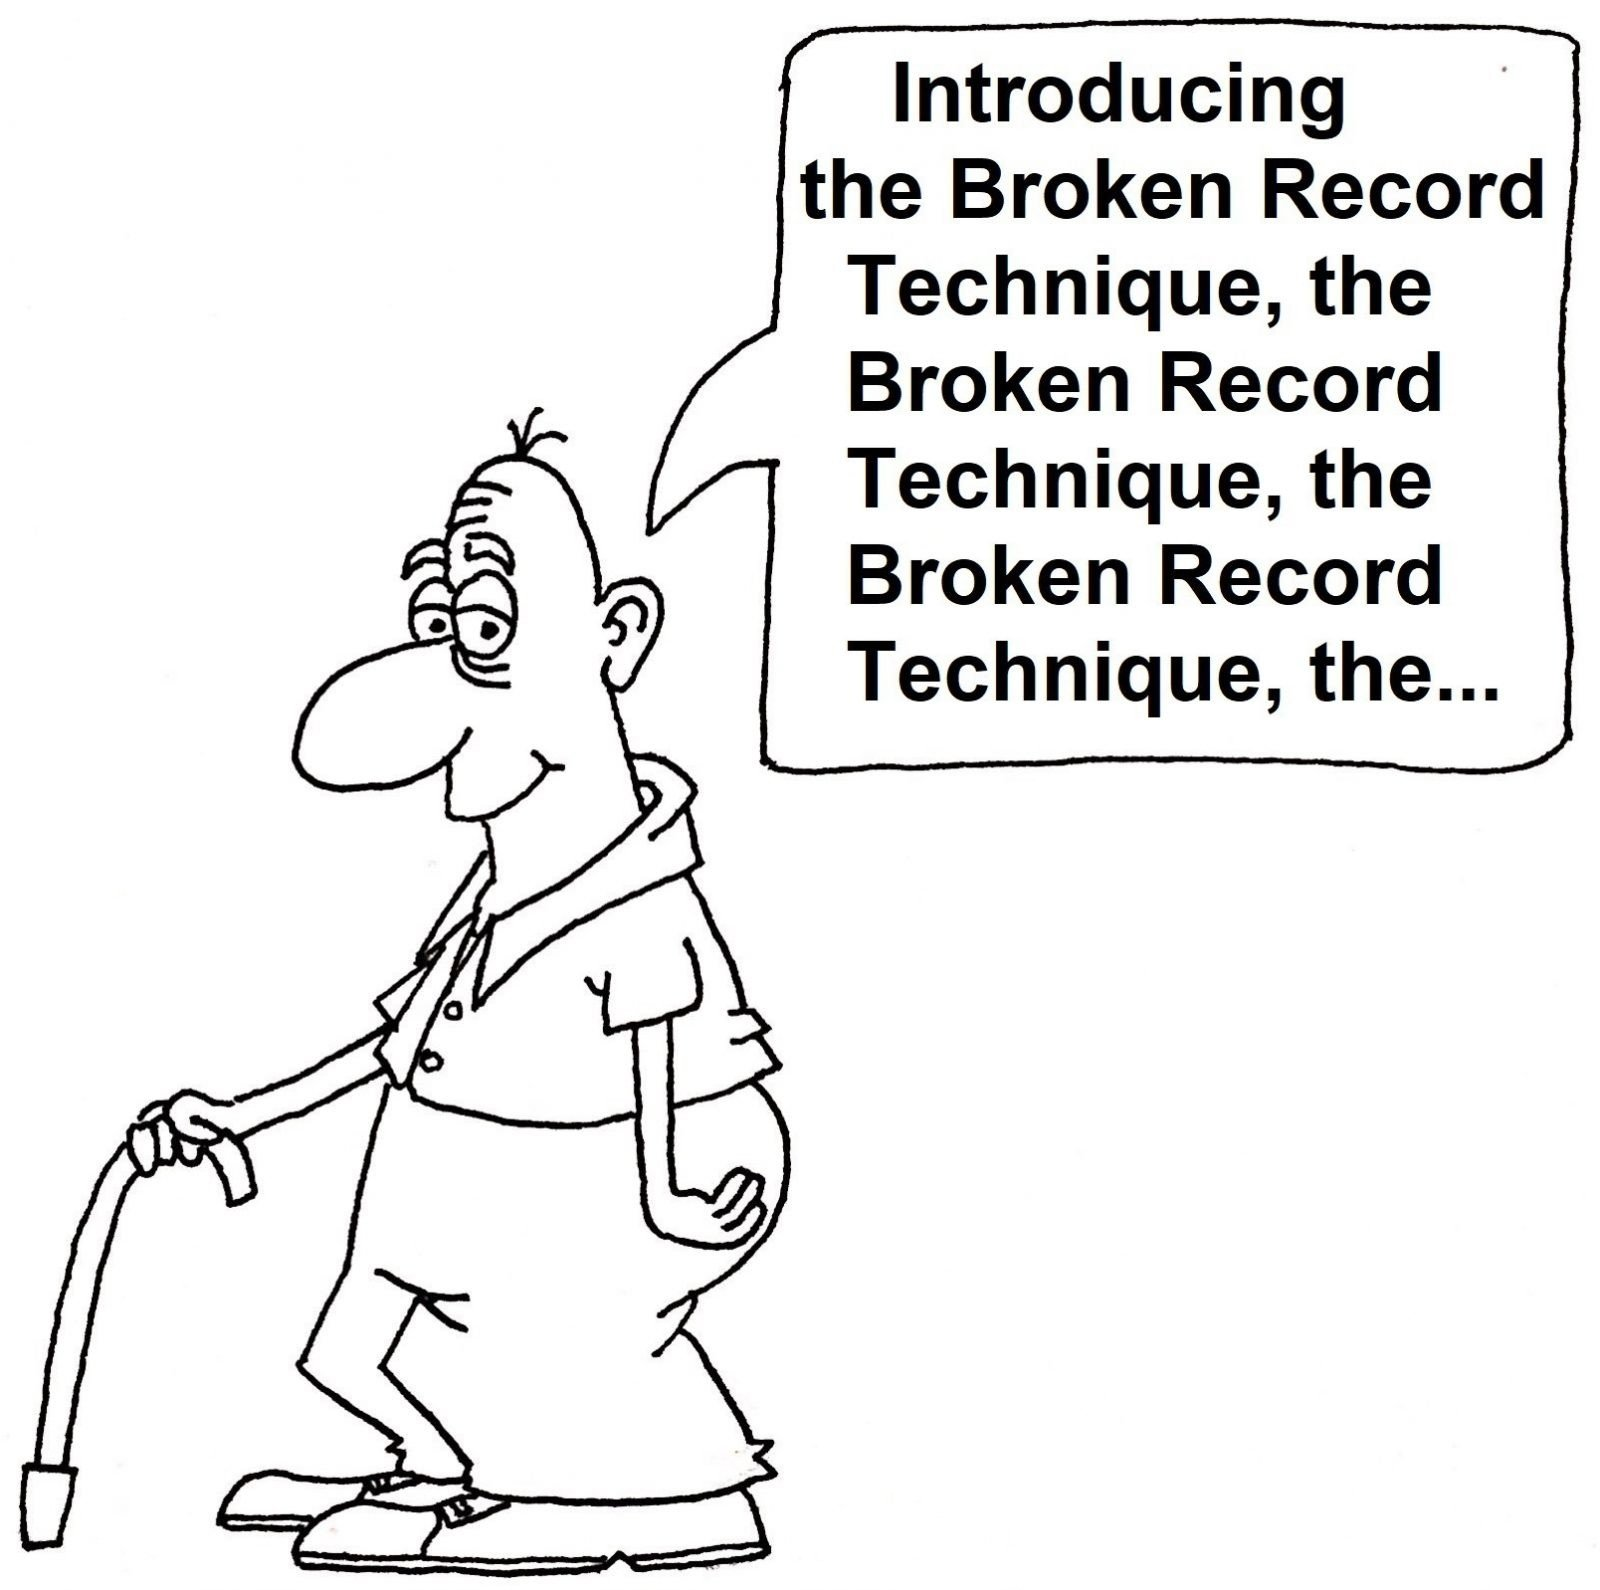 Introducing the Broken Record Technique